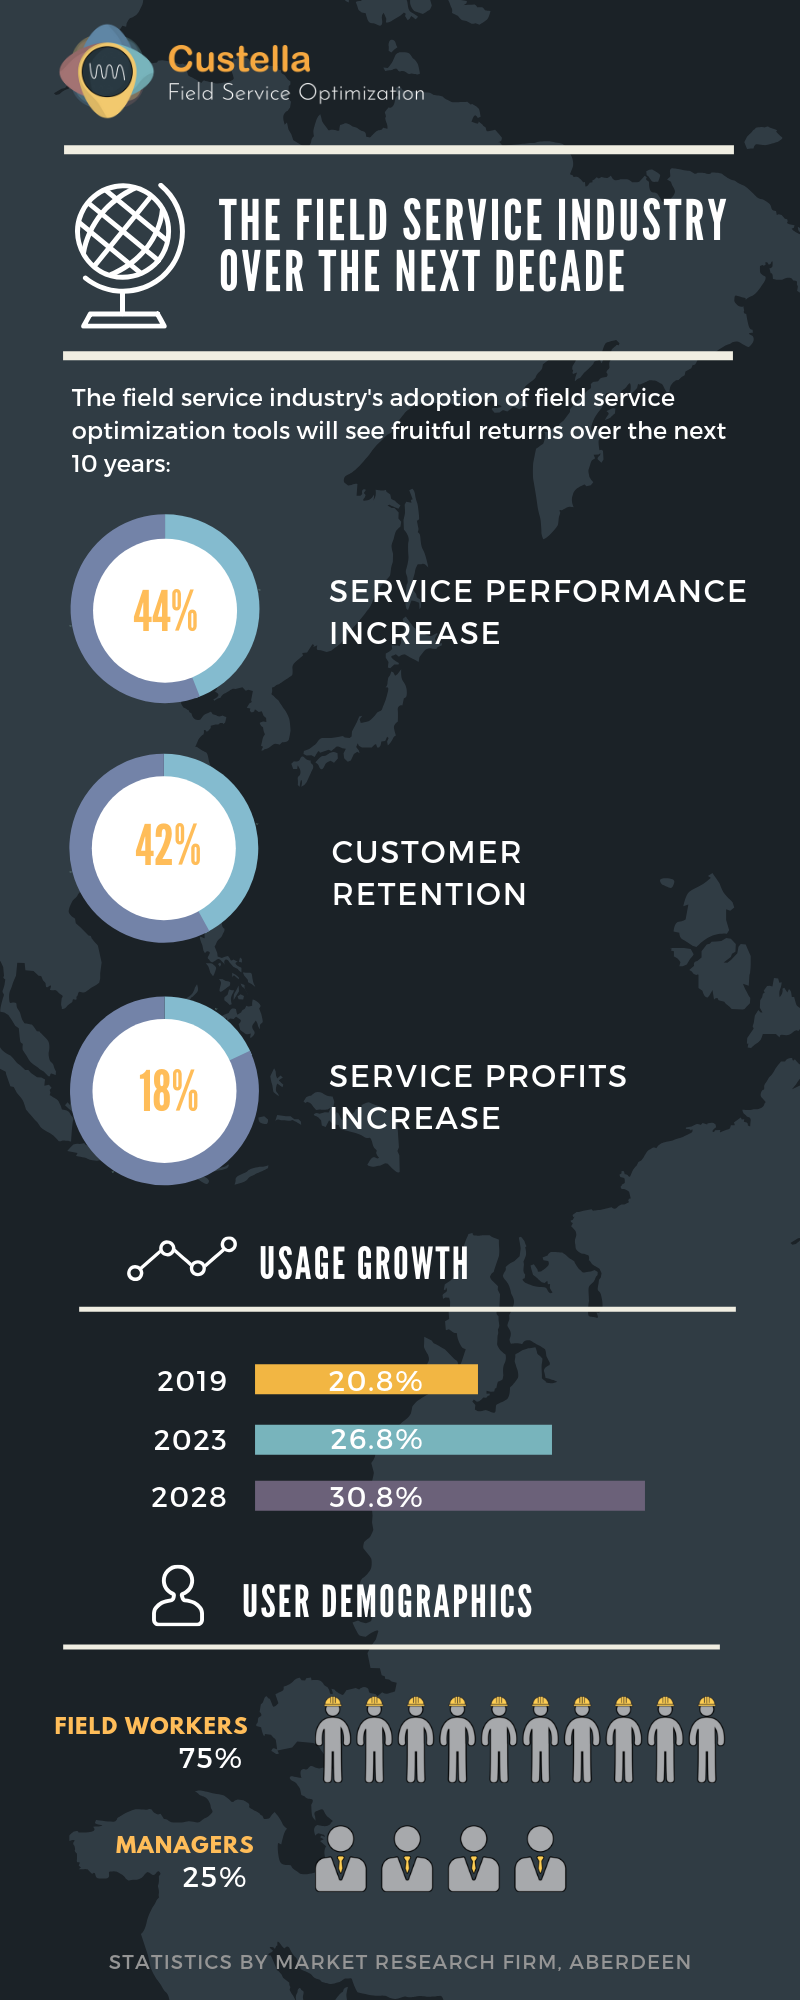 Custella field service optimization infographic: The field service industry over the next decade